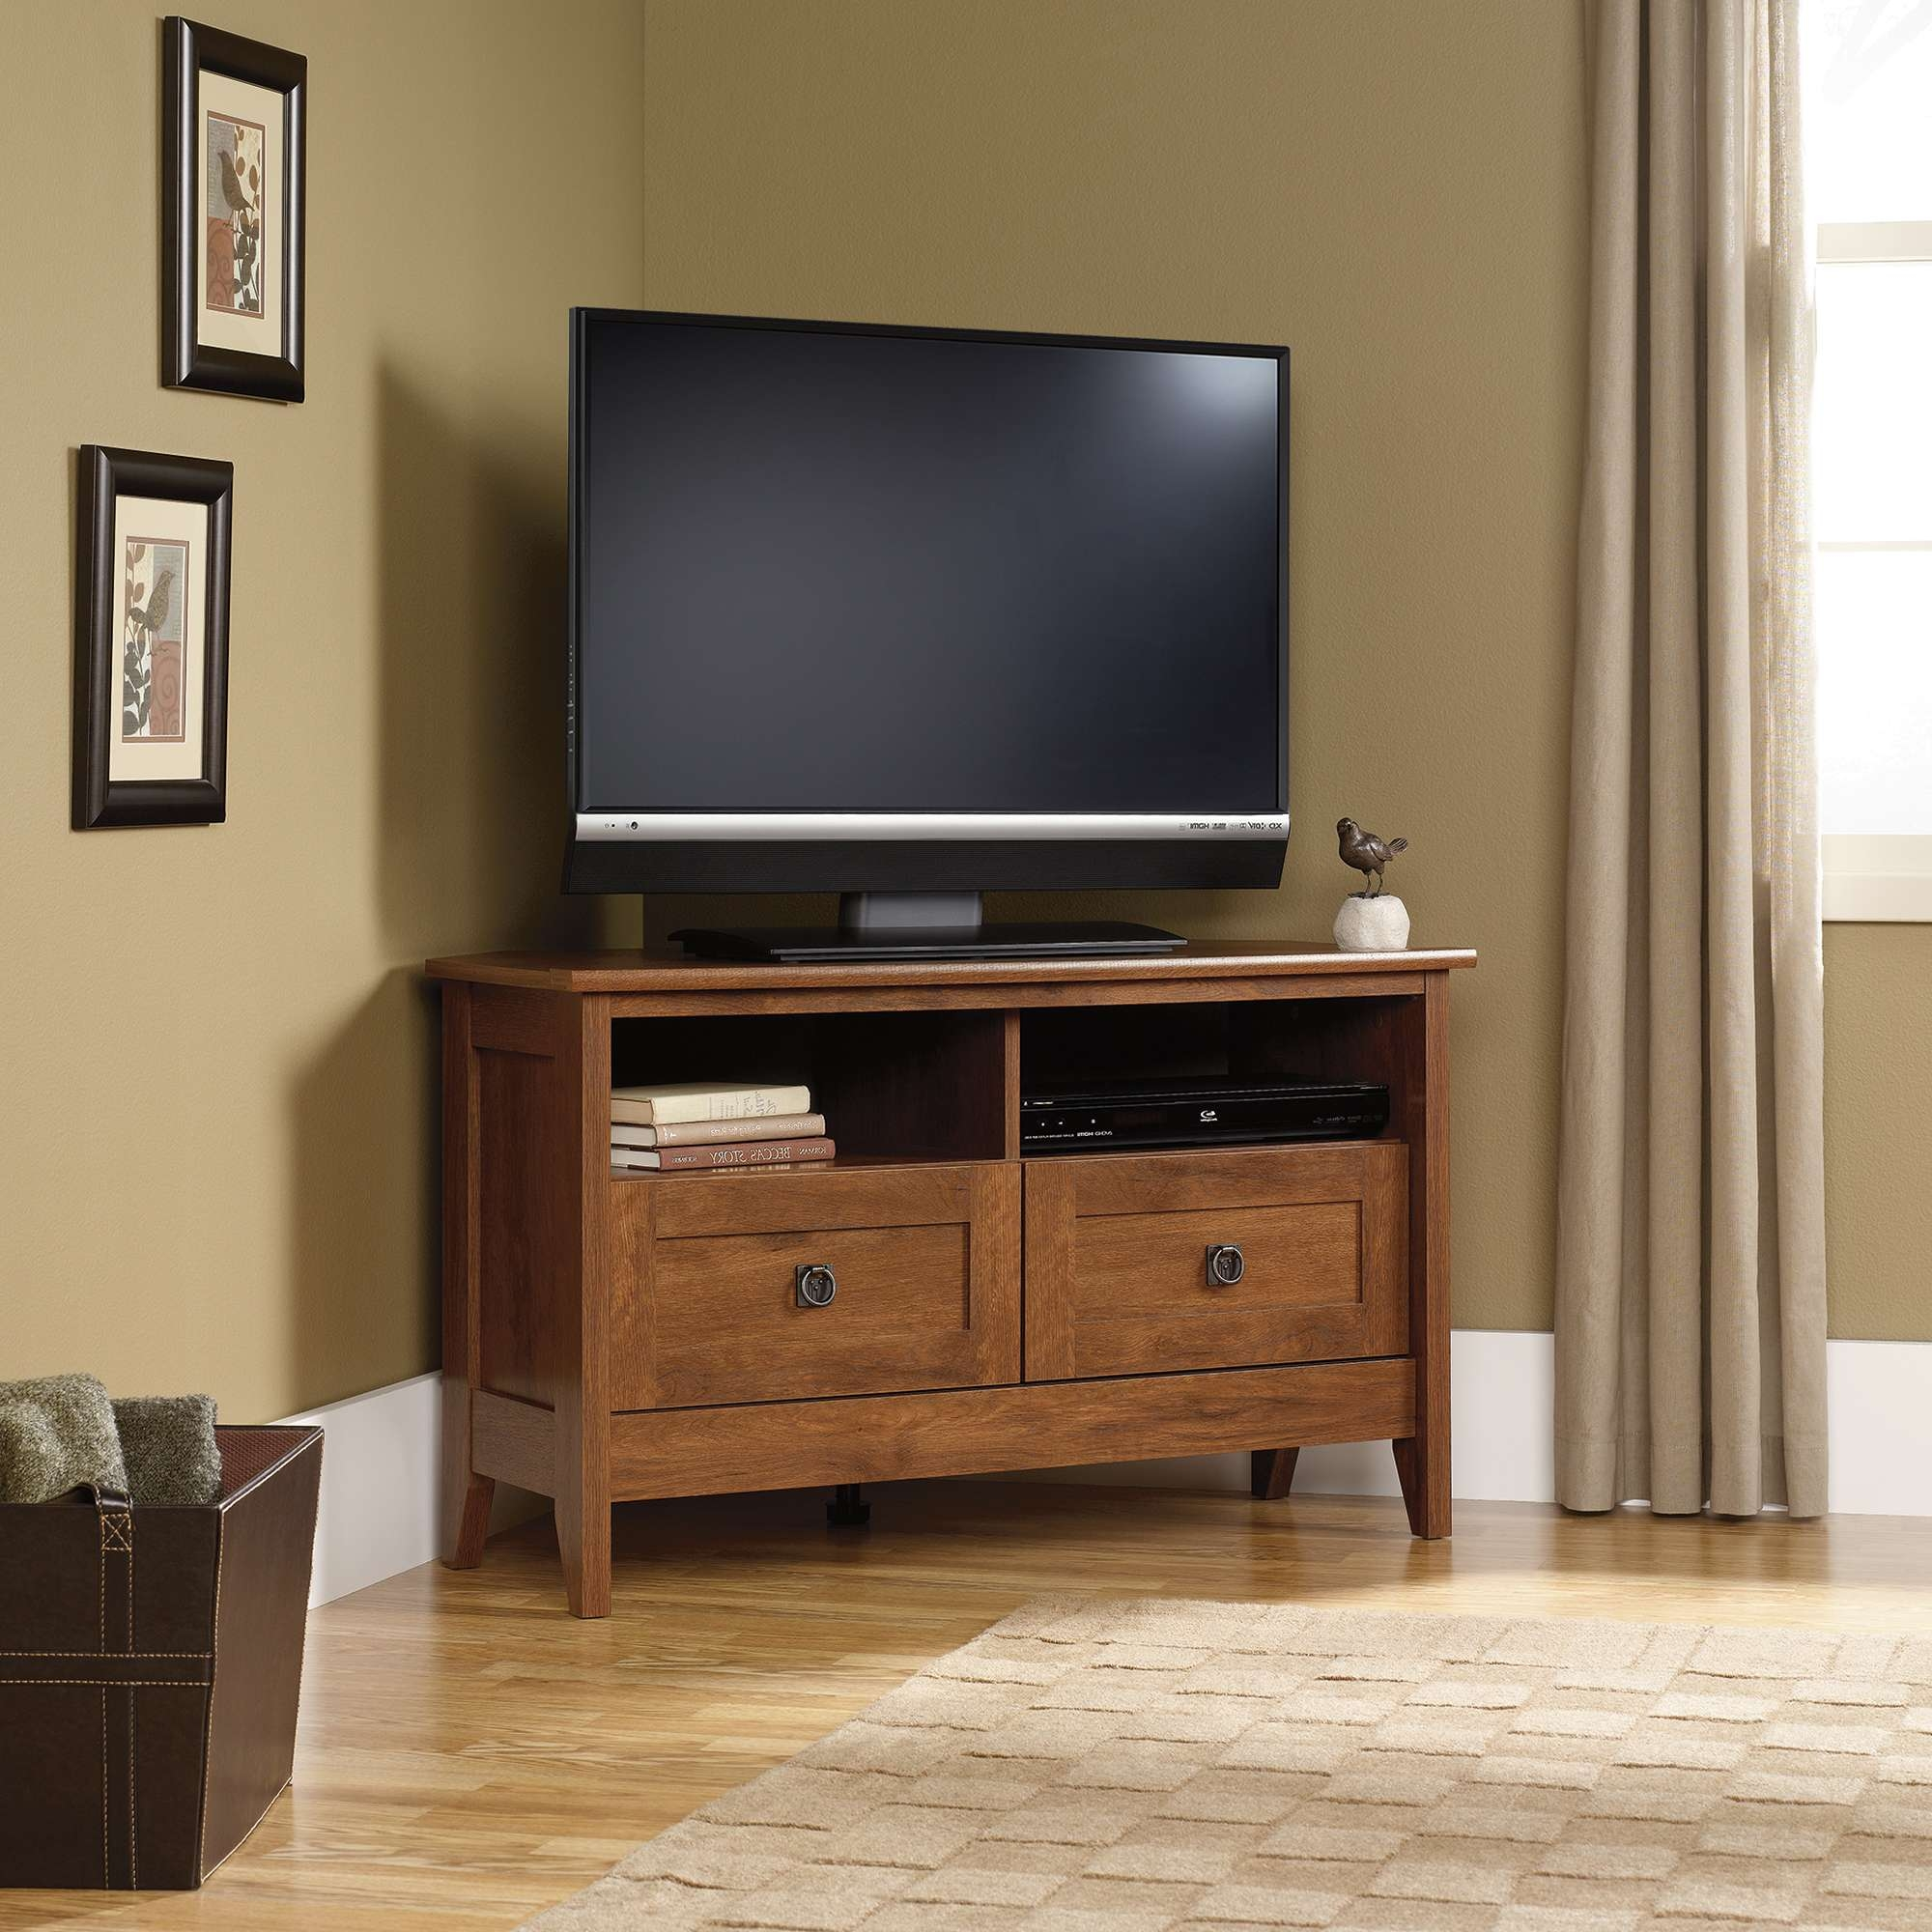 Sauder Select | Corner Tv Stand | 410627 | Sauder For Tv Stands For Corner (View 12 of 15)